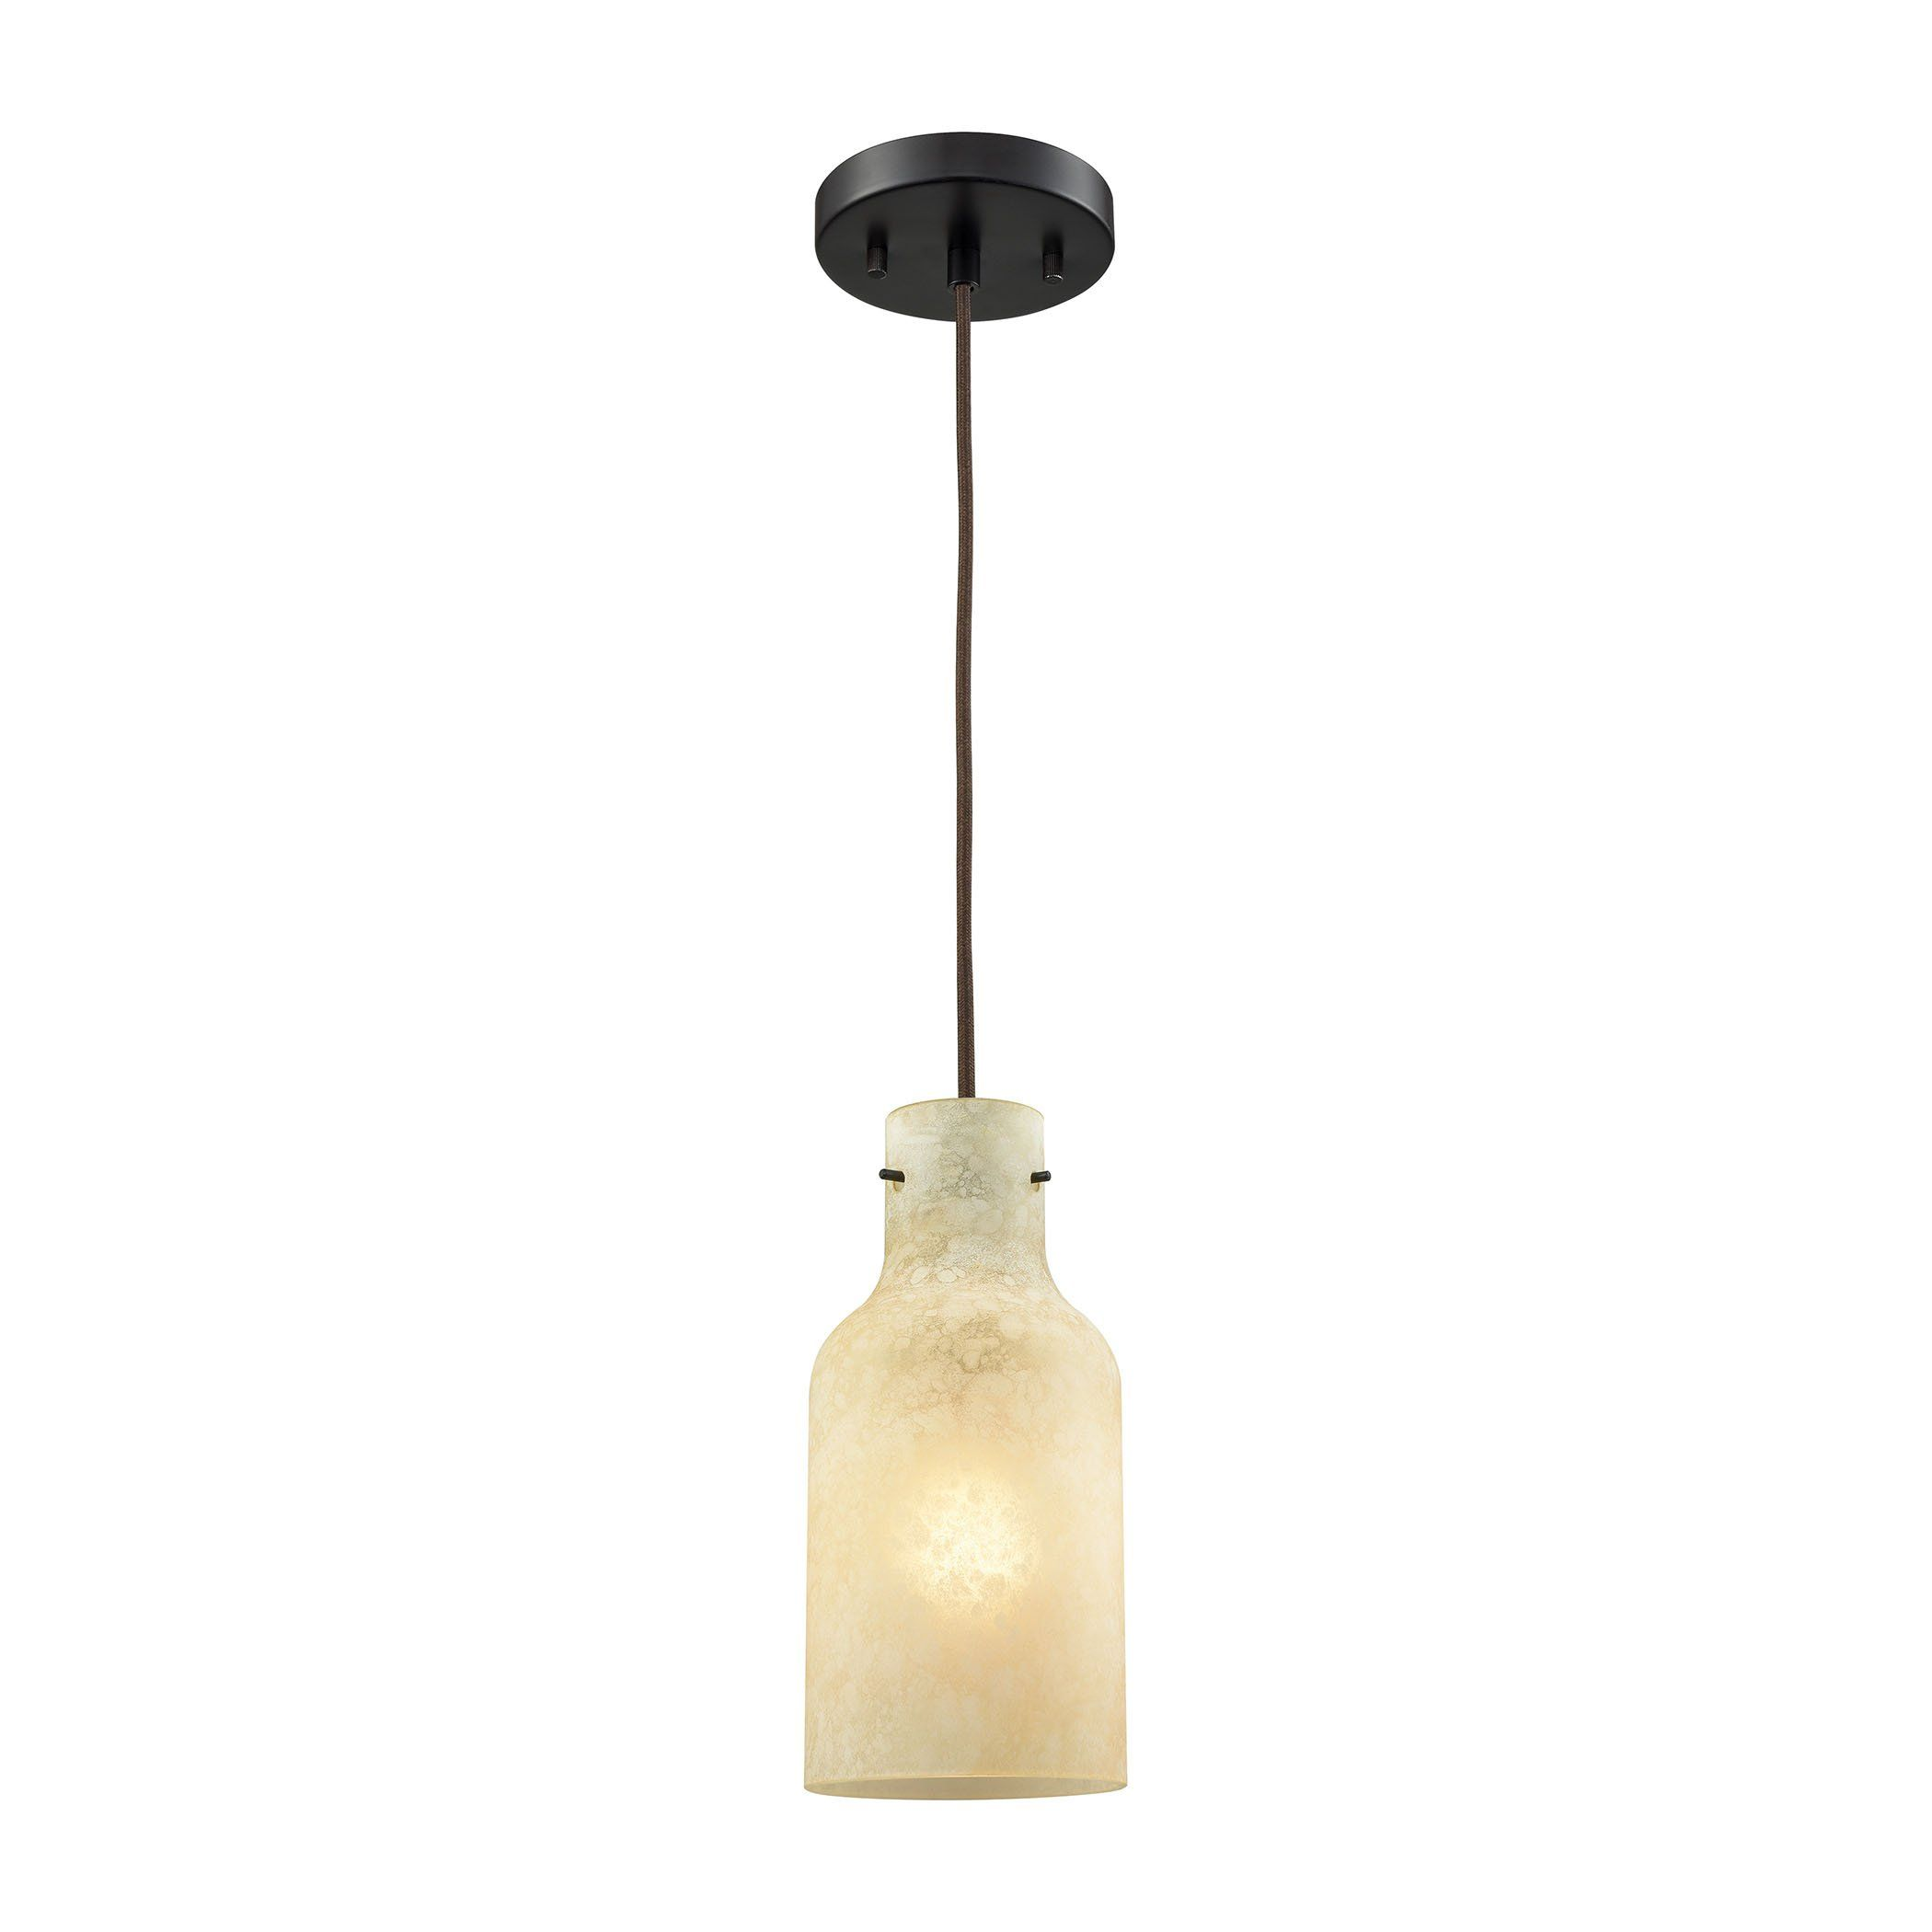 Weatherly 1 Light Pendant In Oil Rubbed Bronze With Chalky Beige Glass Includes Recessed Lighting K With Images Pendant Lighting Elk Lighting Recessed Lighting